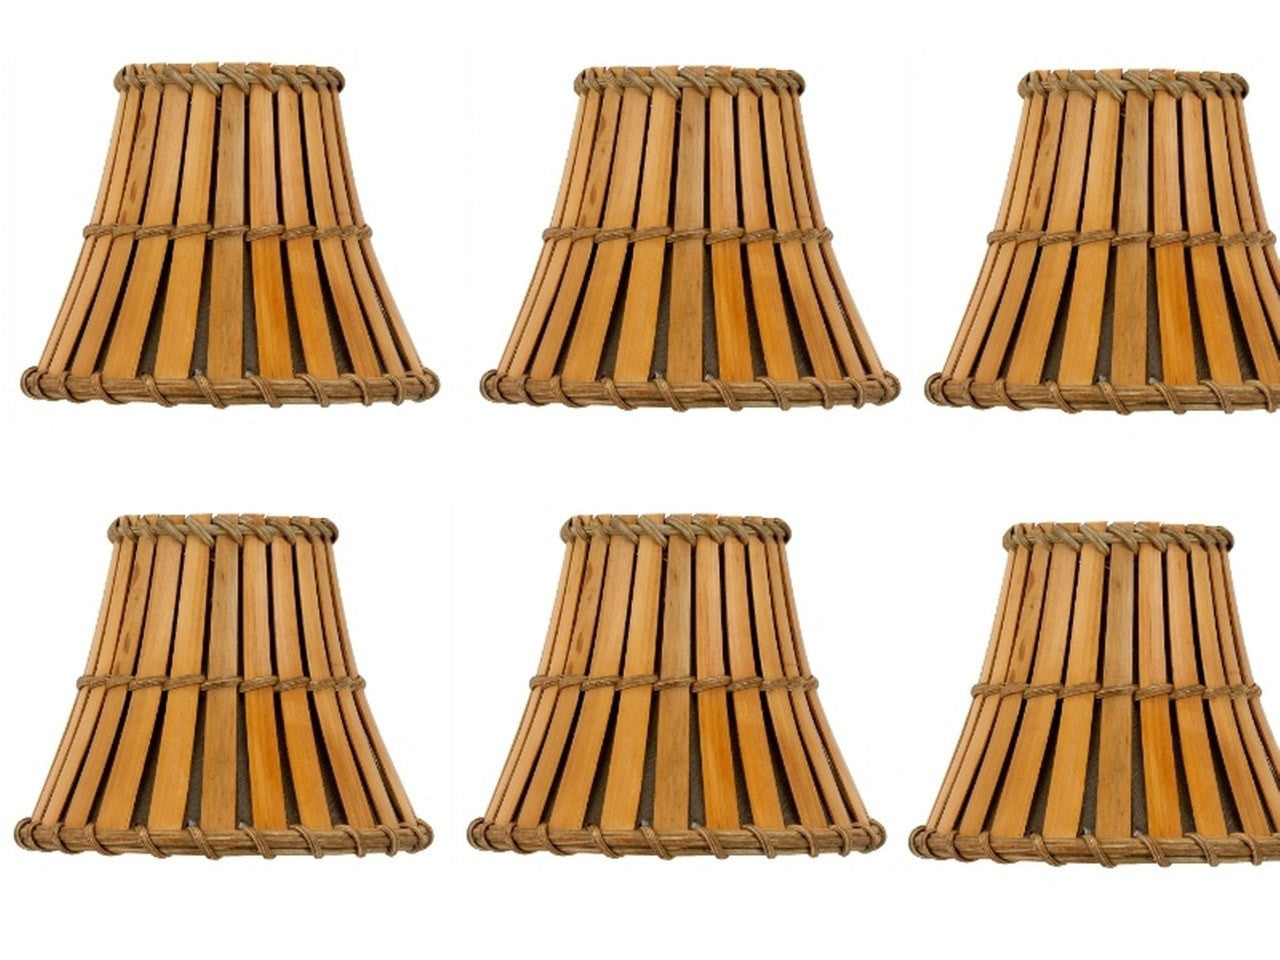 Set of 6 bamboo style 5 inch mini chandelier shades clip on shades upgradelights set of 6 bamboo style 5 inch mini chandelier shades clip mozeypictures Image collections